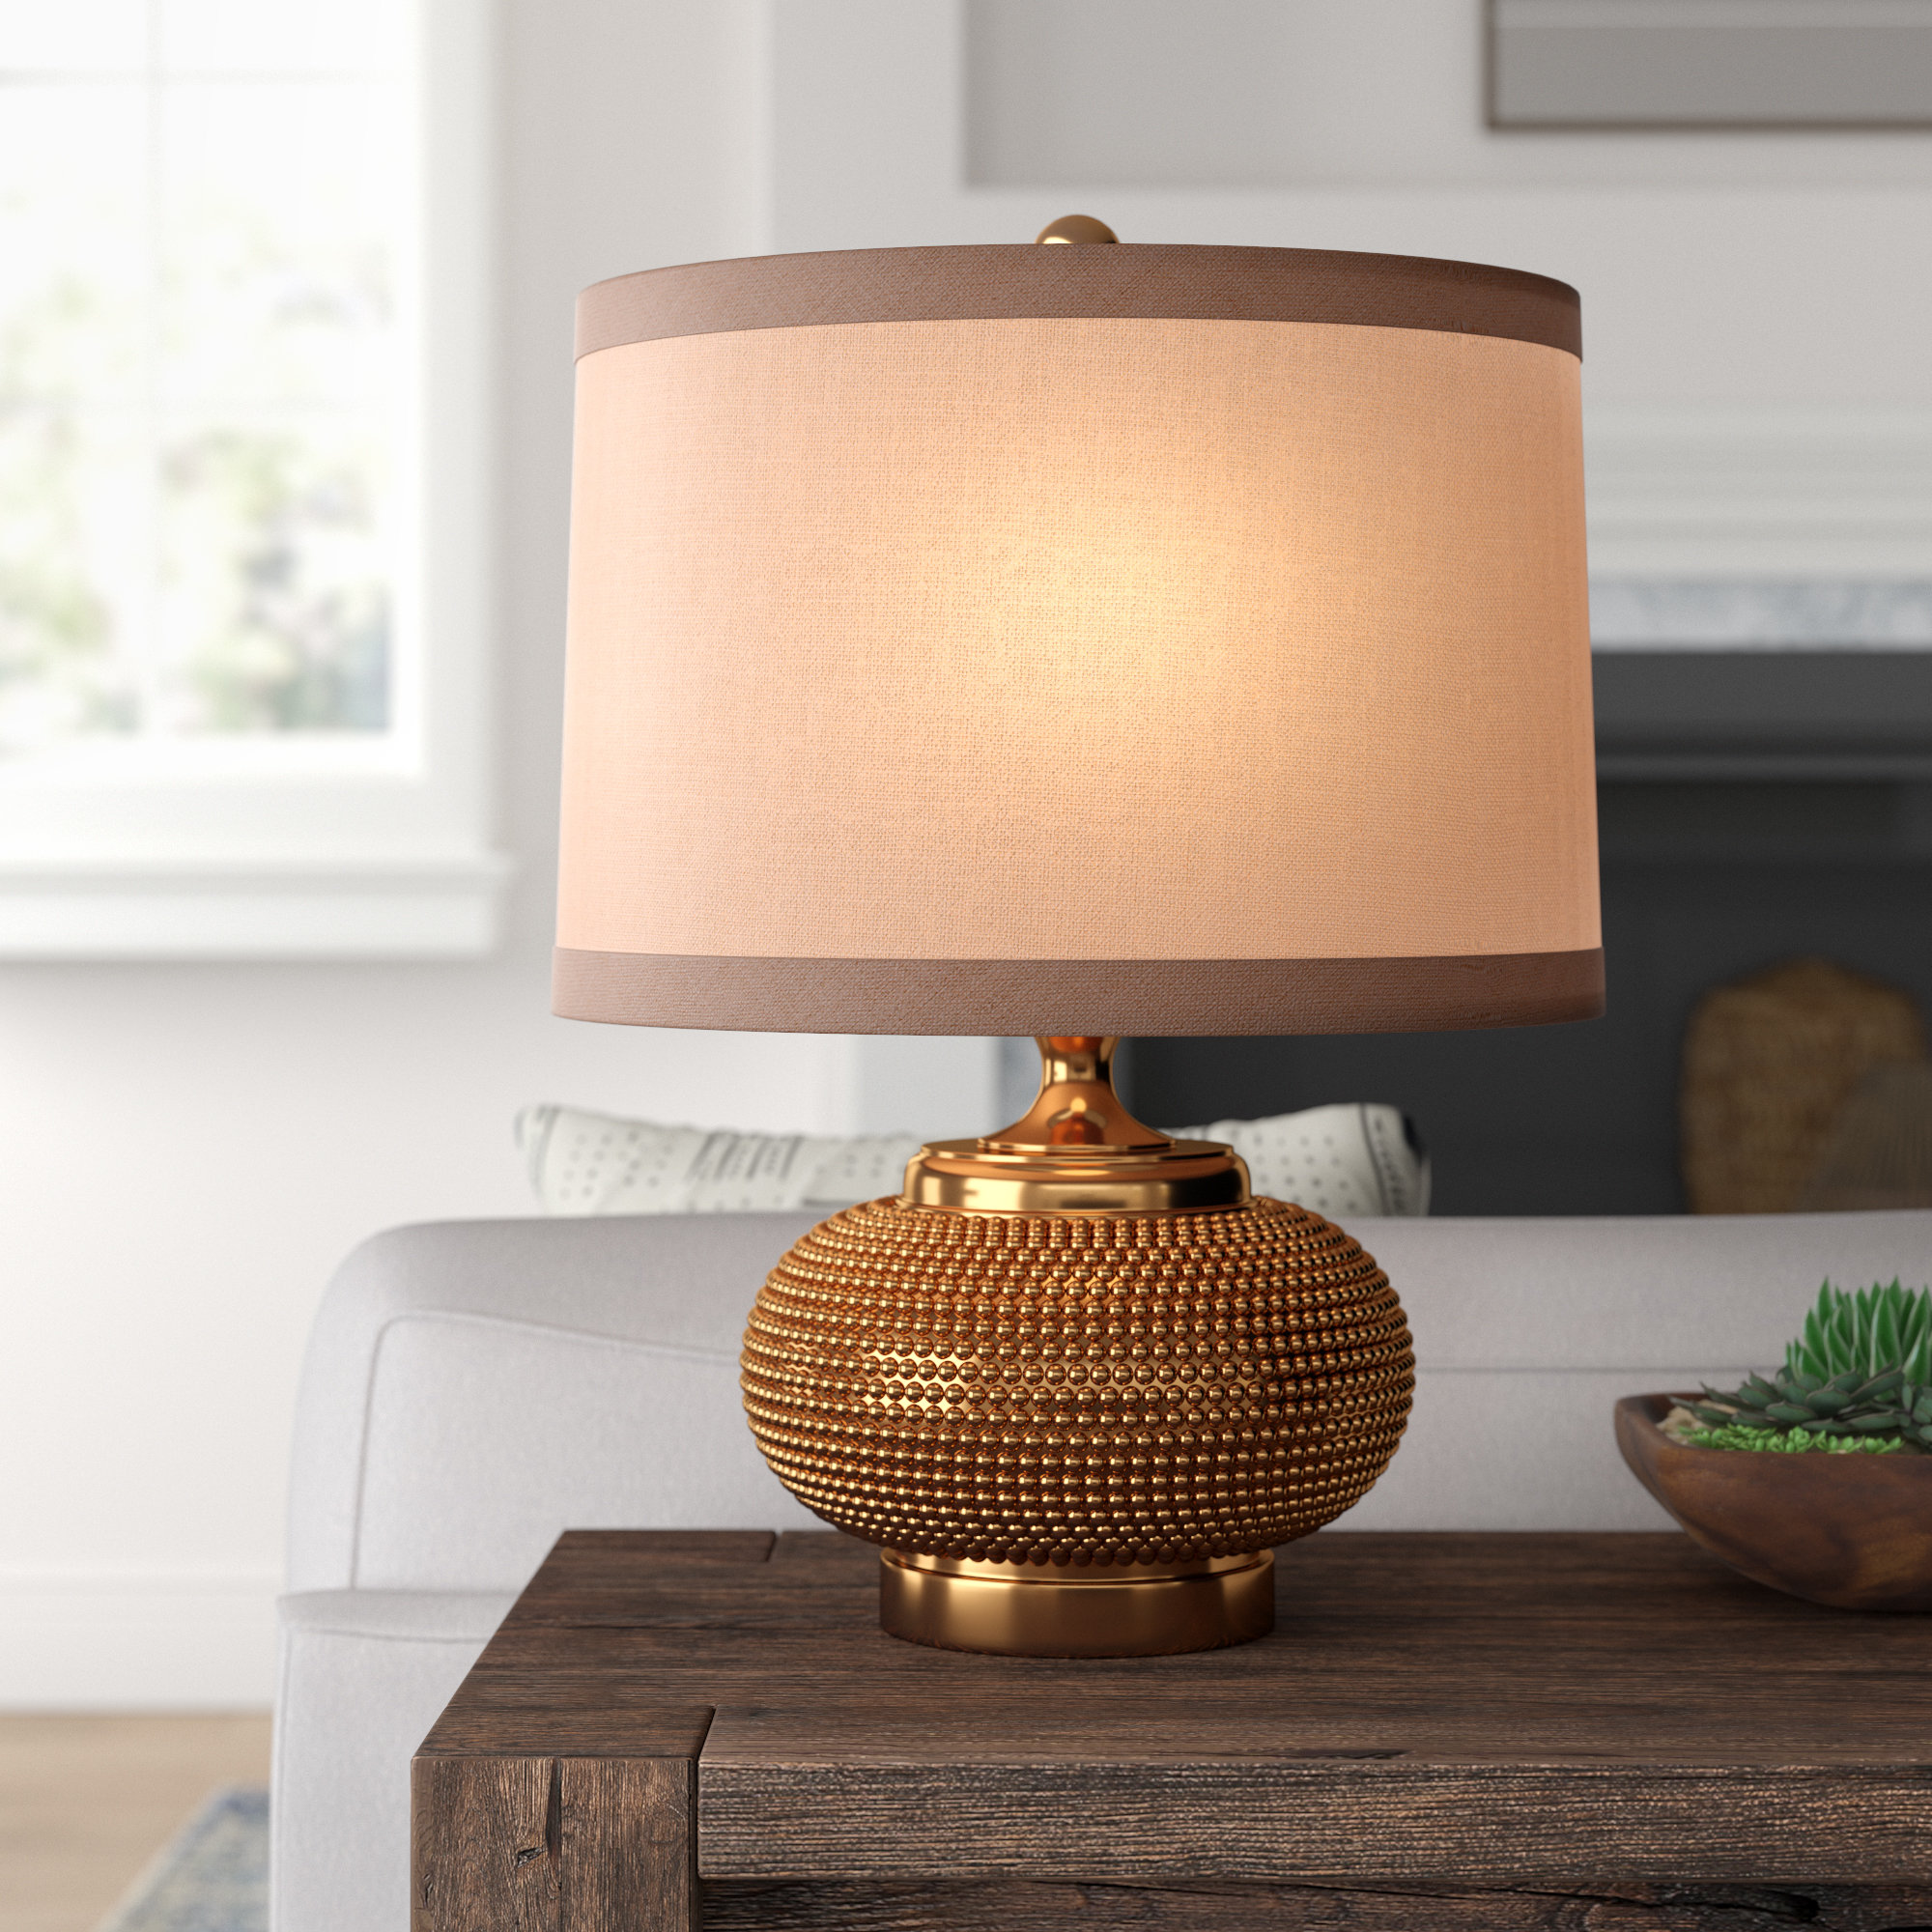 mistana mavis table lamp reviews accent lighting seattle battery operated floor lamps threshold gold drum wine rack cabinet furniture lucite nesting tables target matching coffee